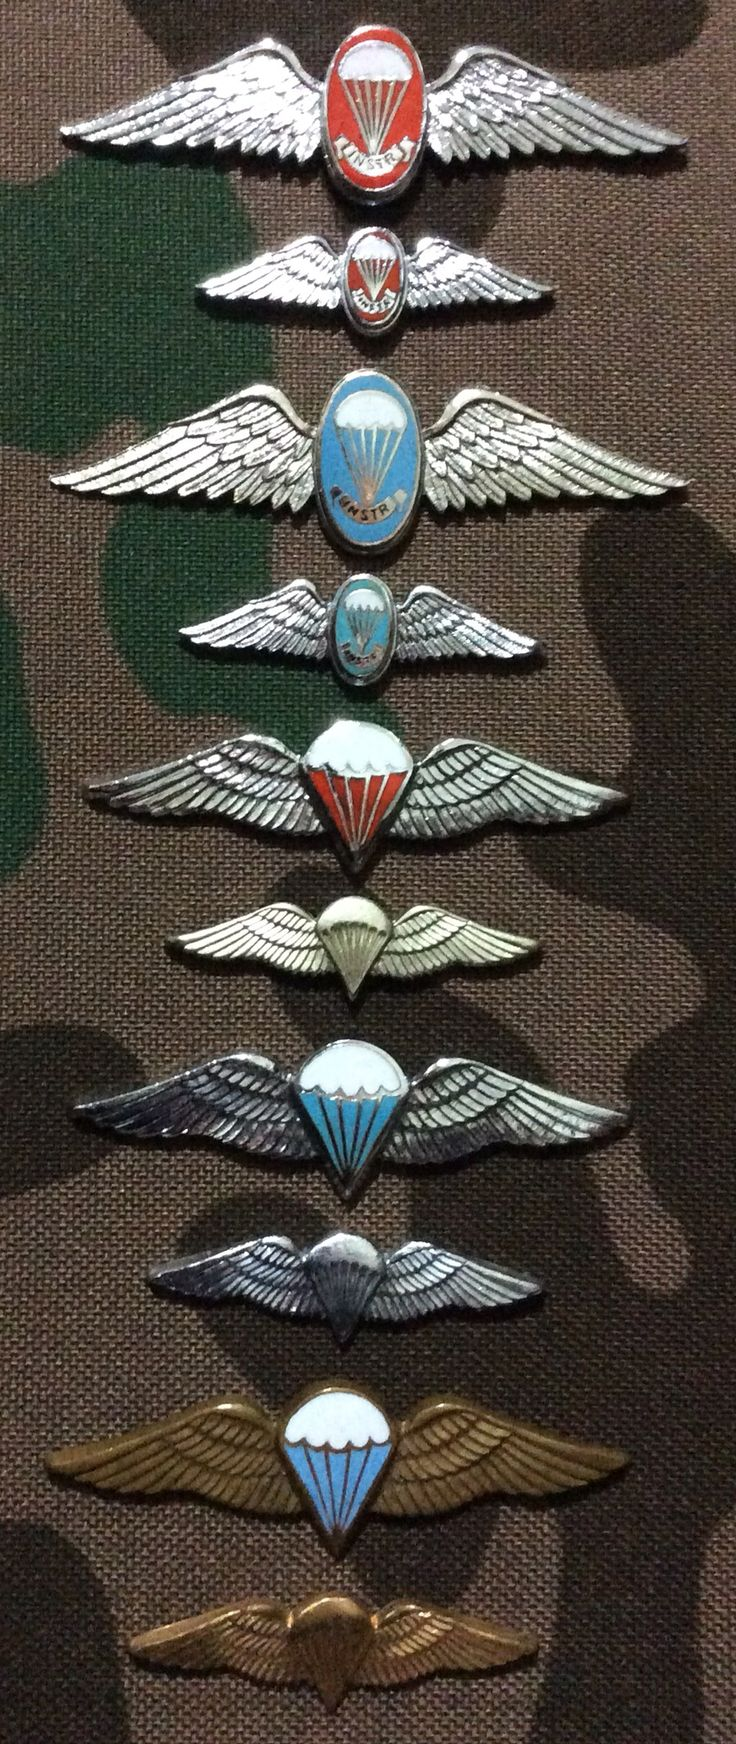 South African paratrooper wings